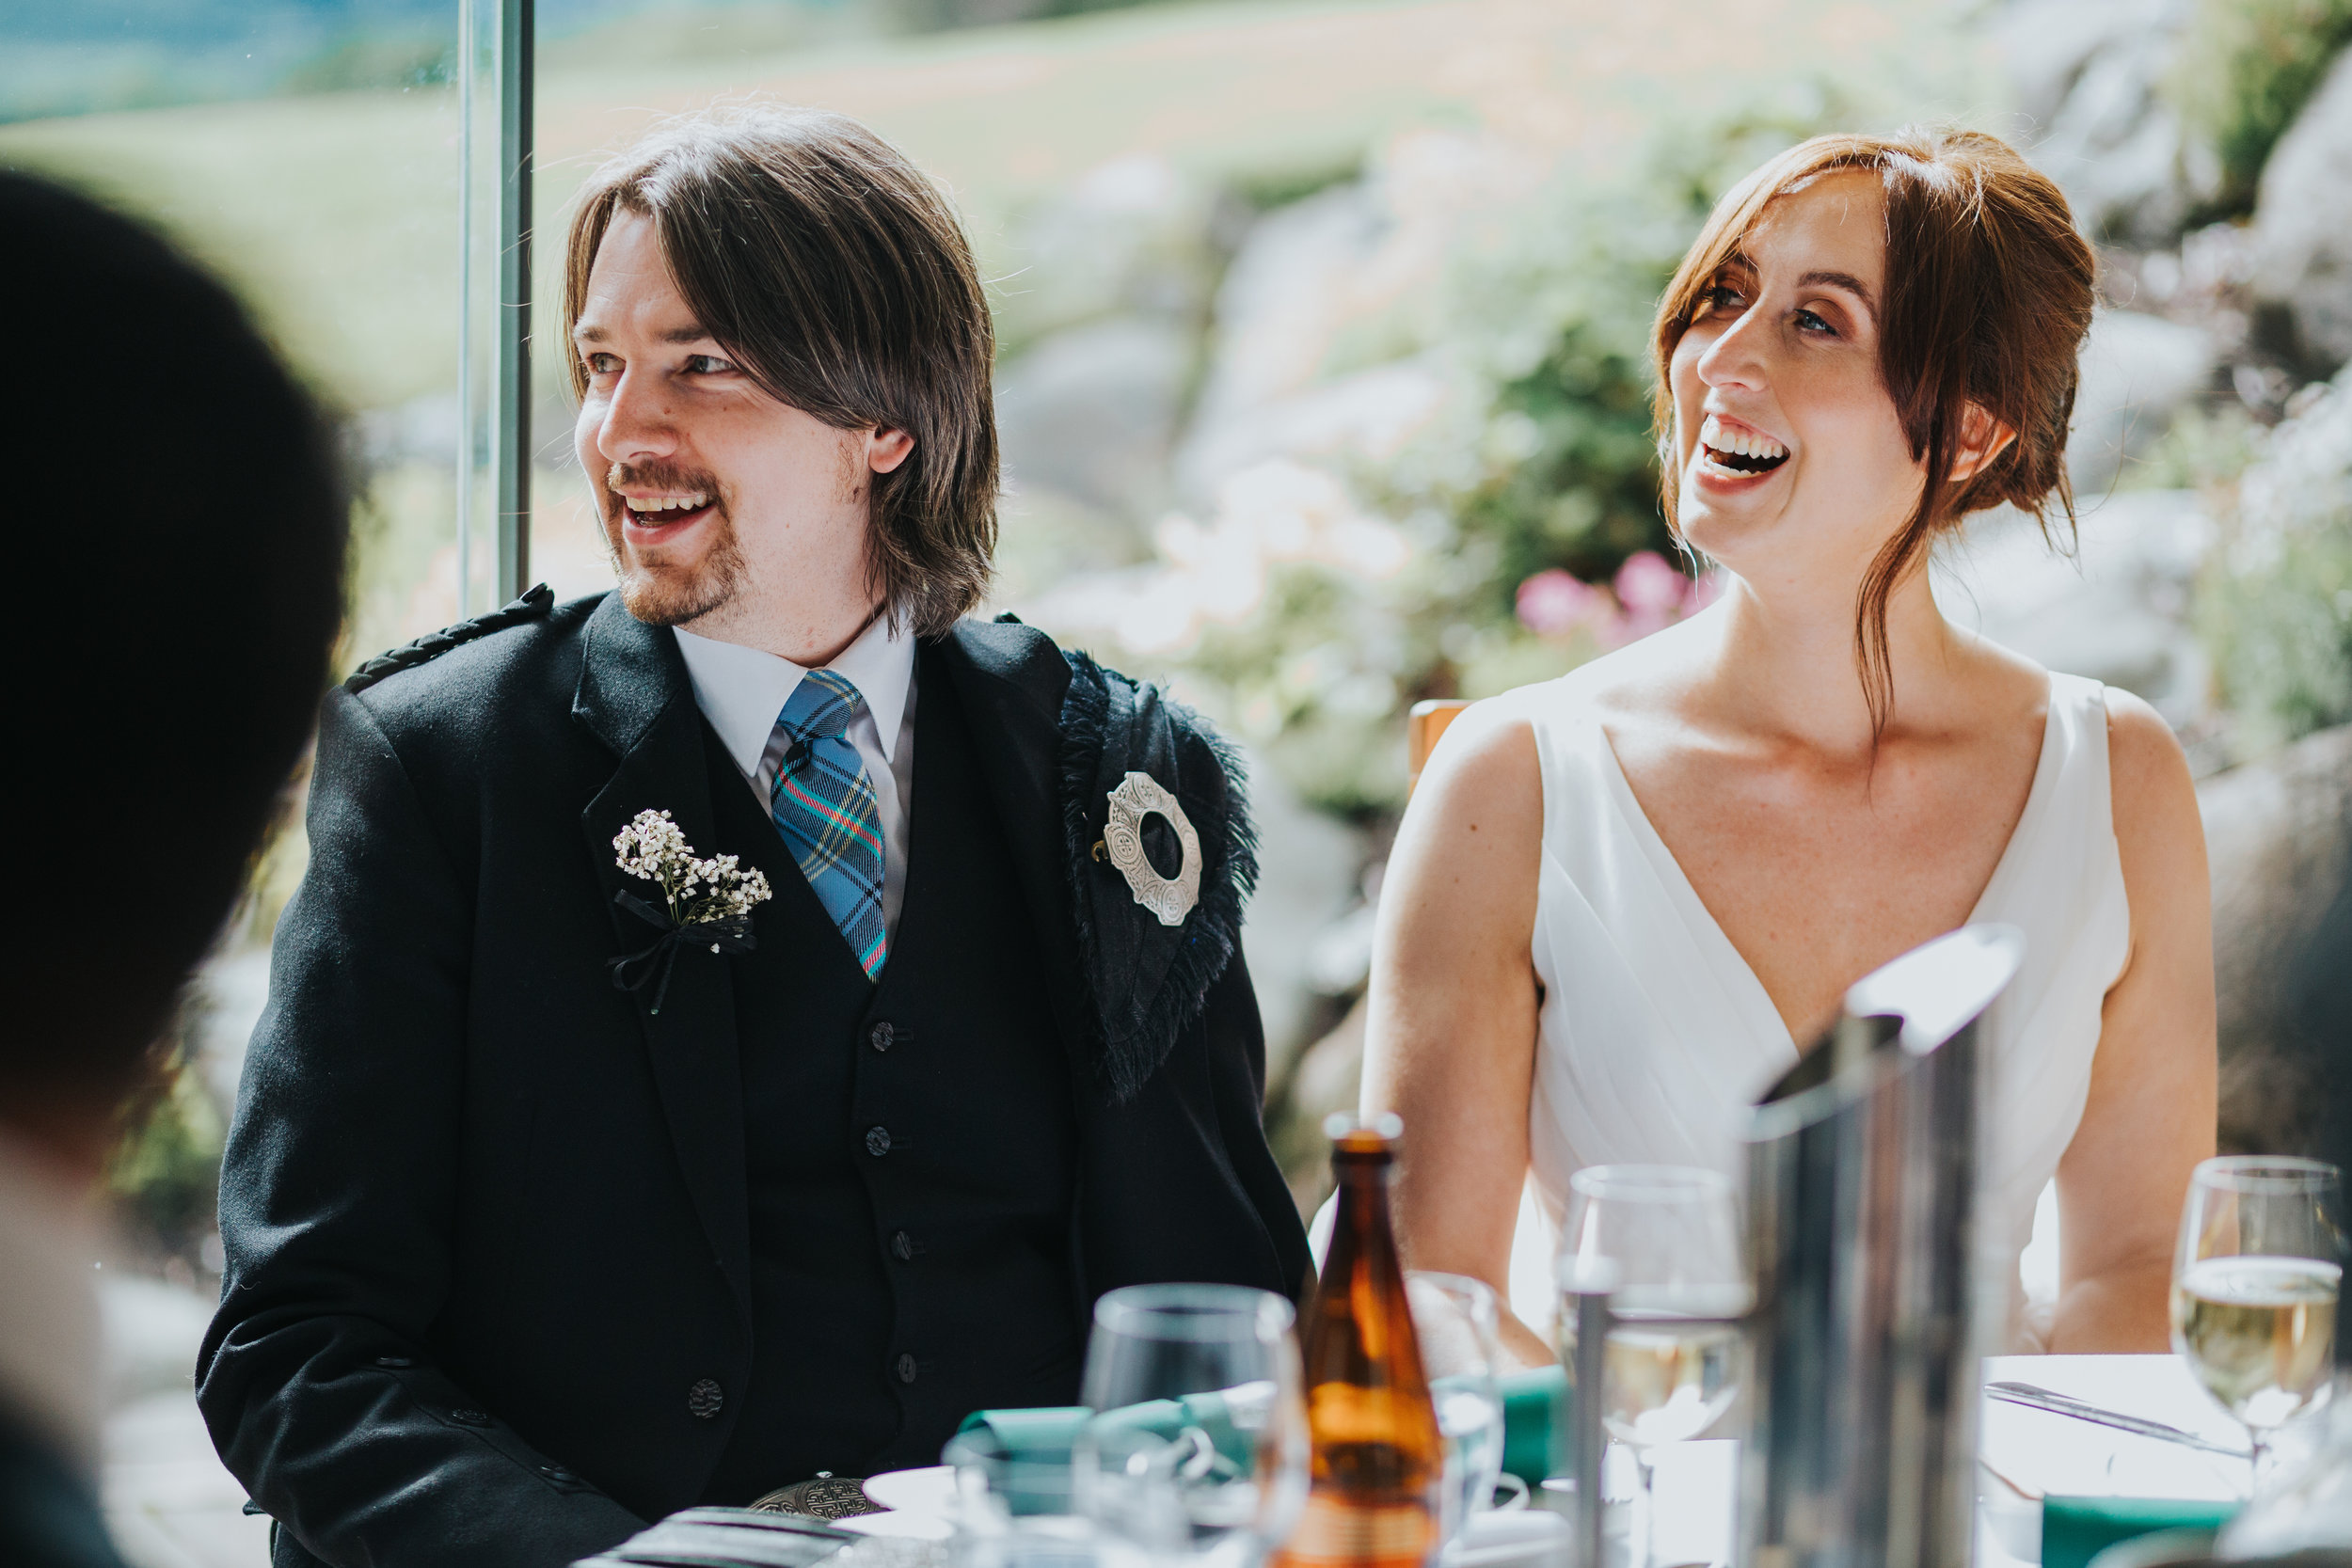 Bride and Groom laugh at speech.